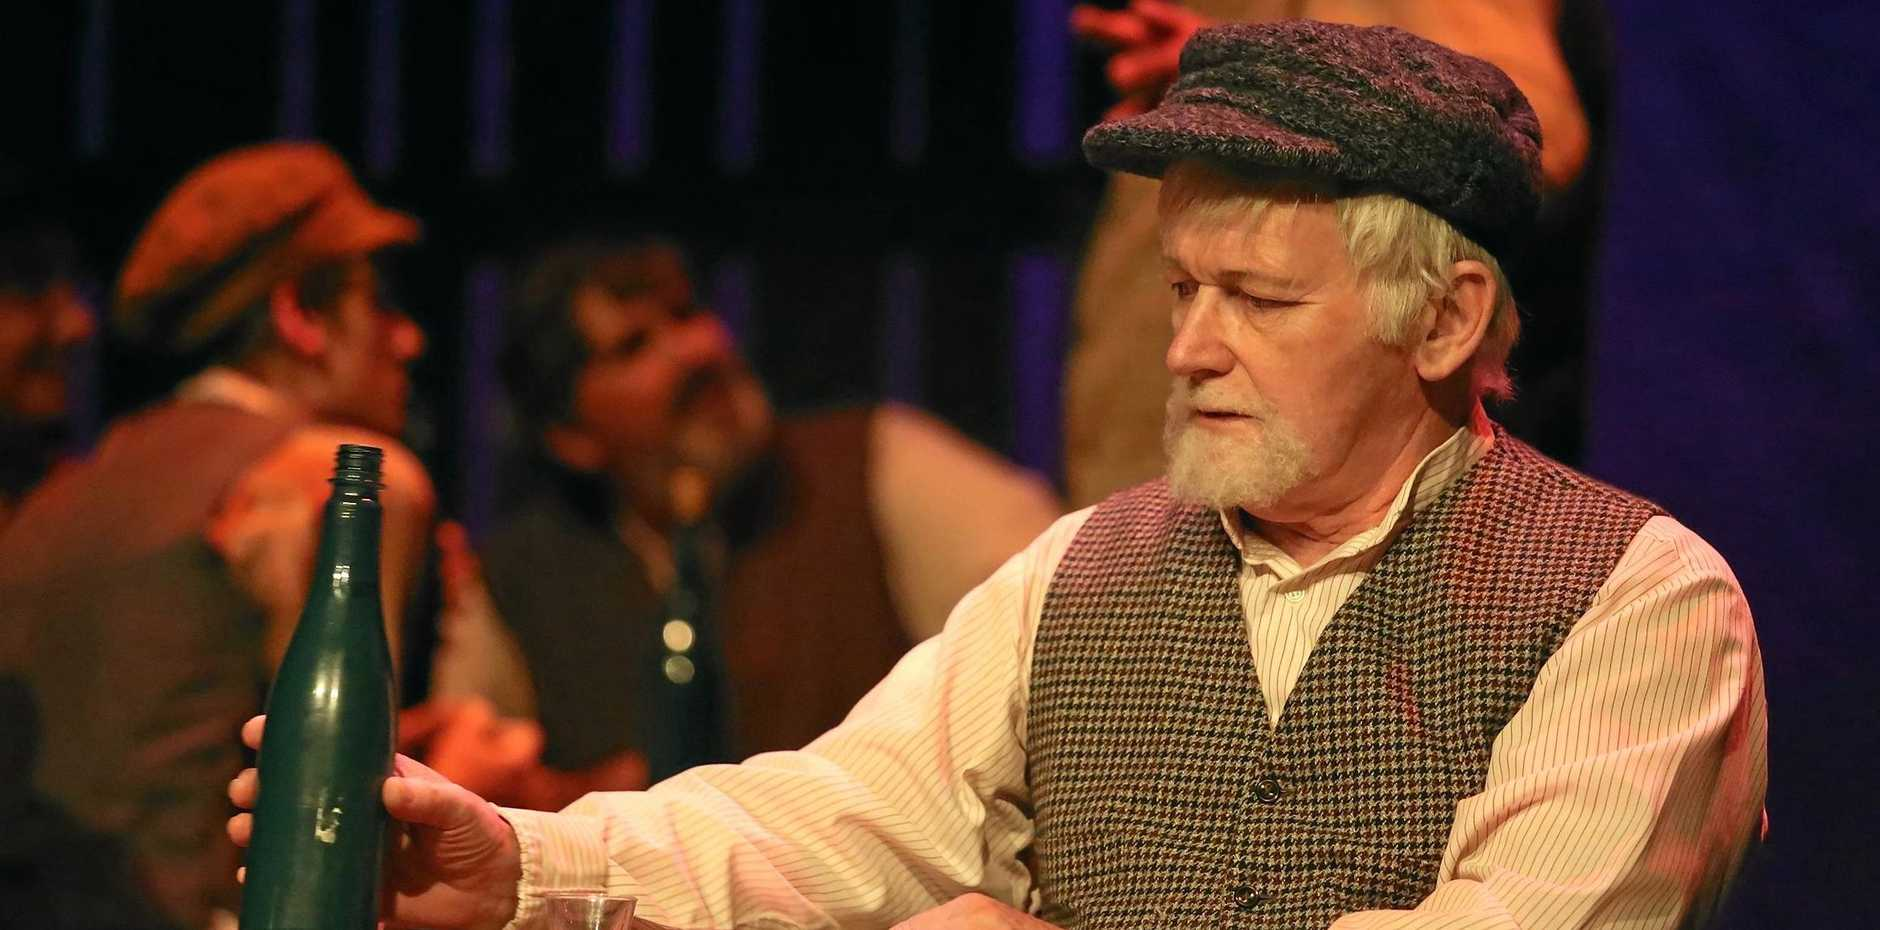 ON STAGE: Richard Chiverrell, in his role as Lazar Wolf in the sell-out Fiddler on the Roof, believes Hello, Dolly! will be equally successful with its blend of comedy, colour, dance and song.